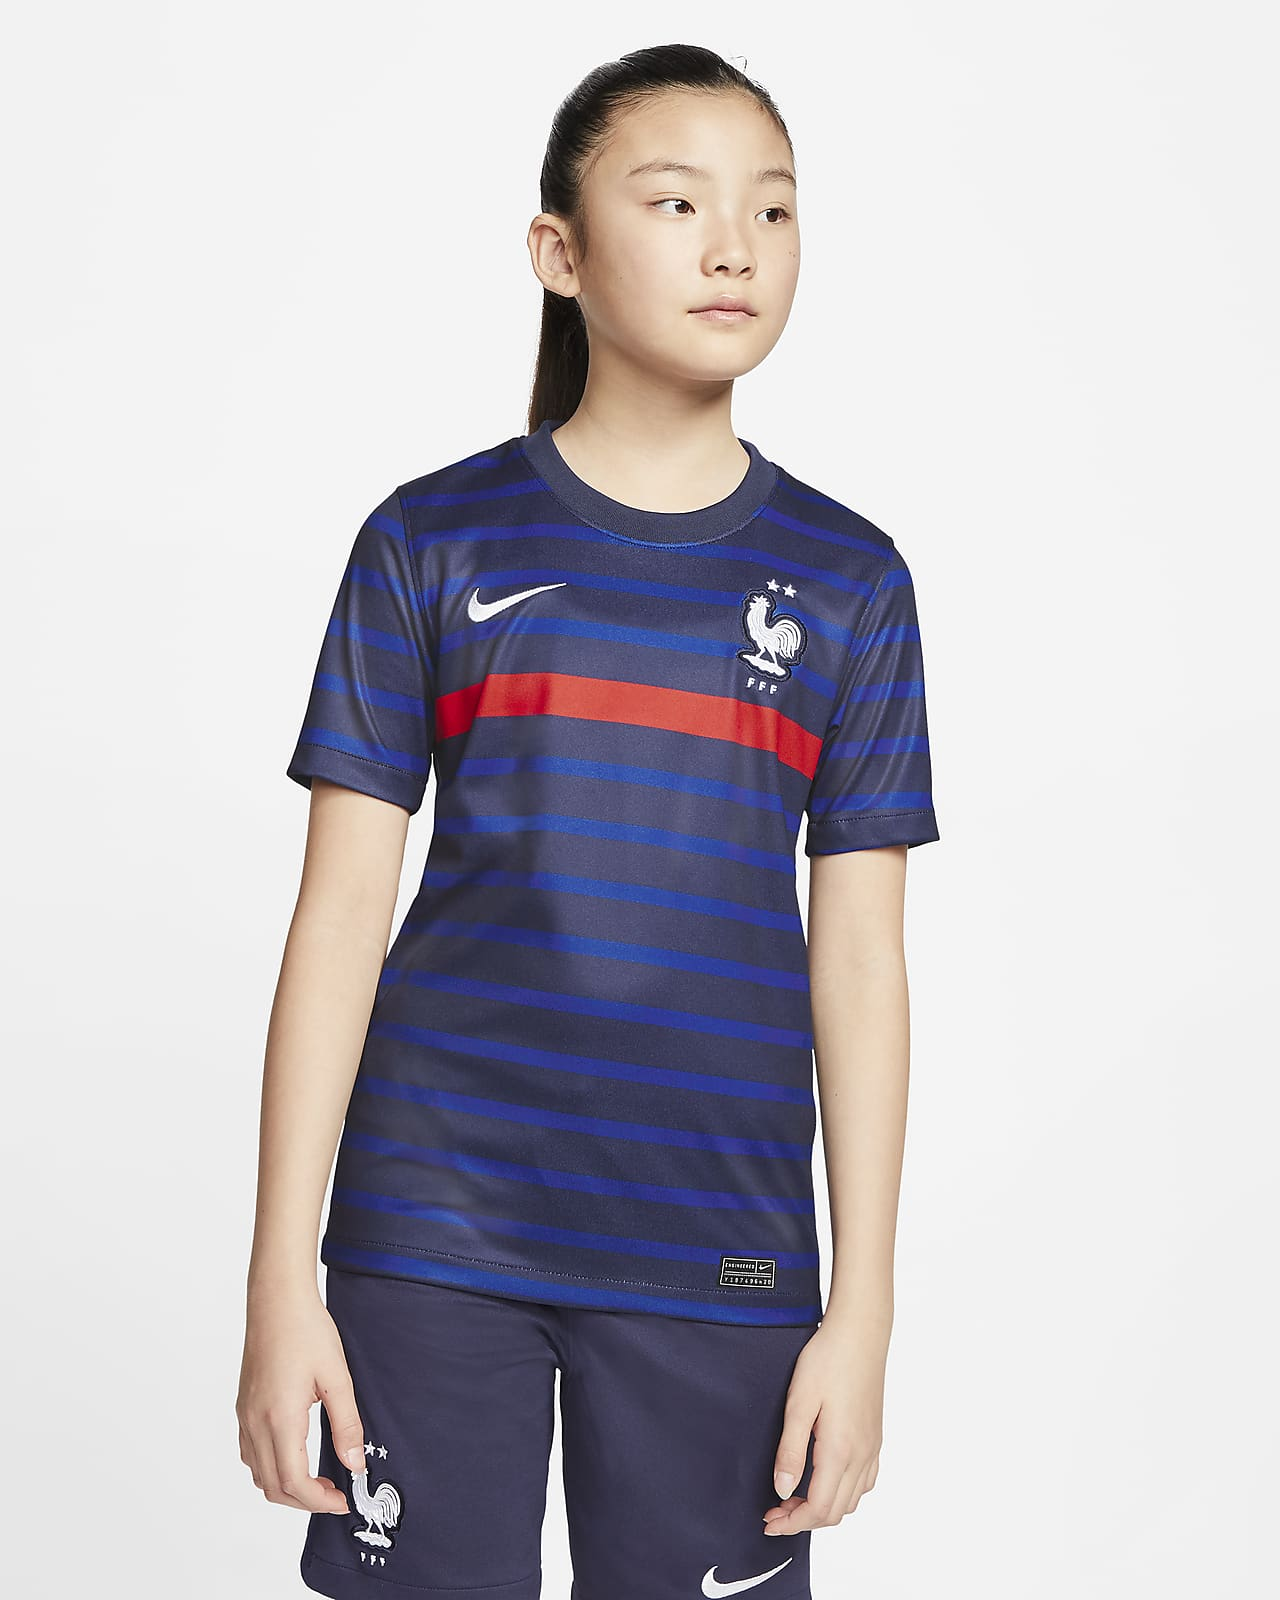 FFF 2020 Stadium Home Older Kids' Football Shirt